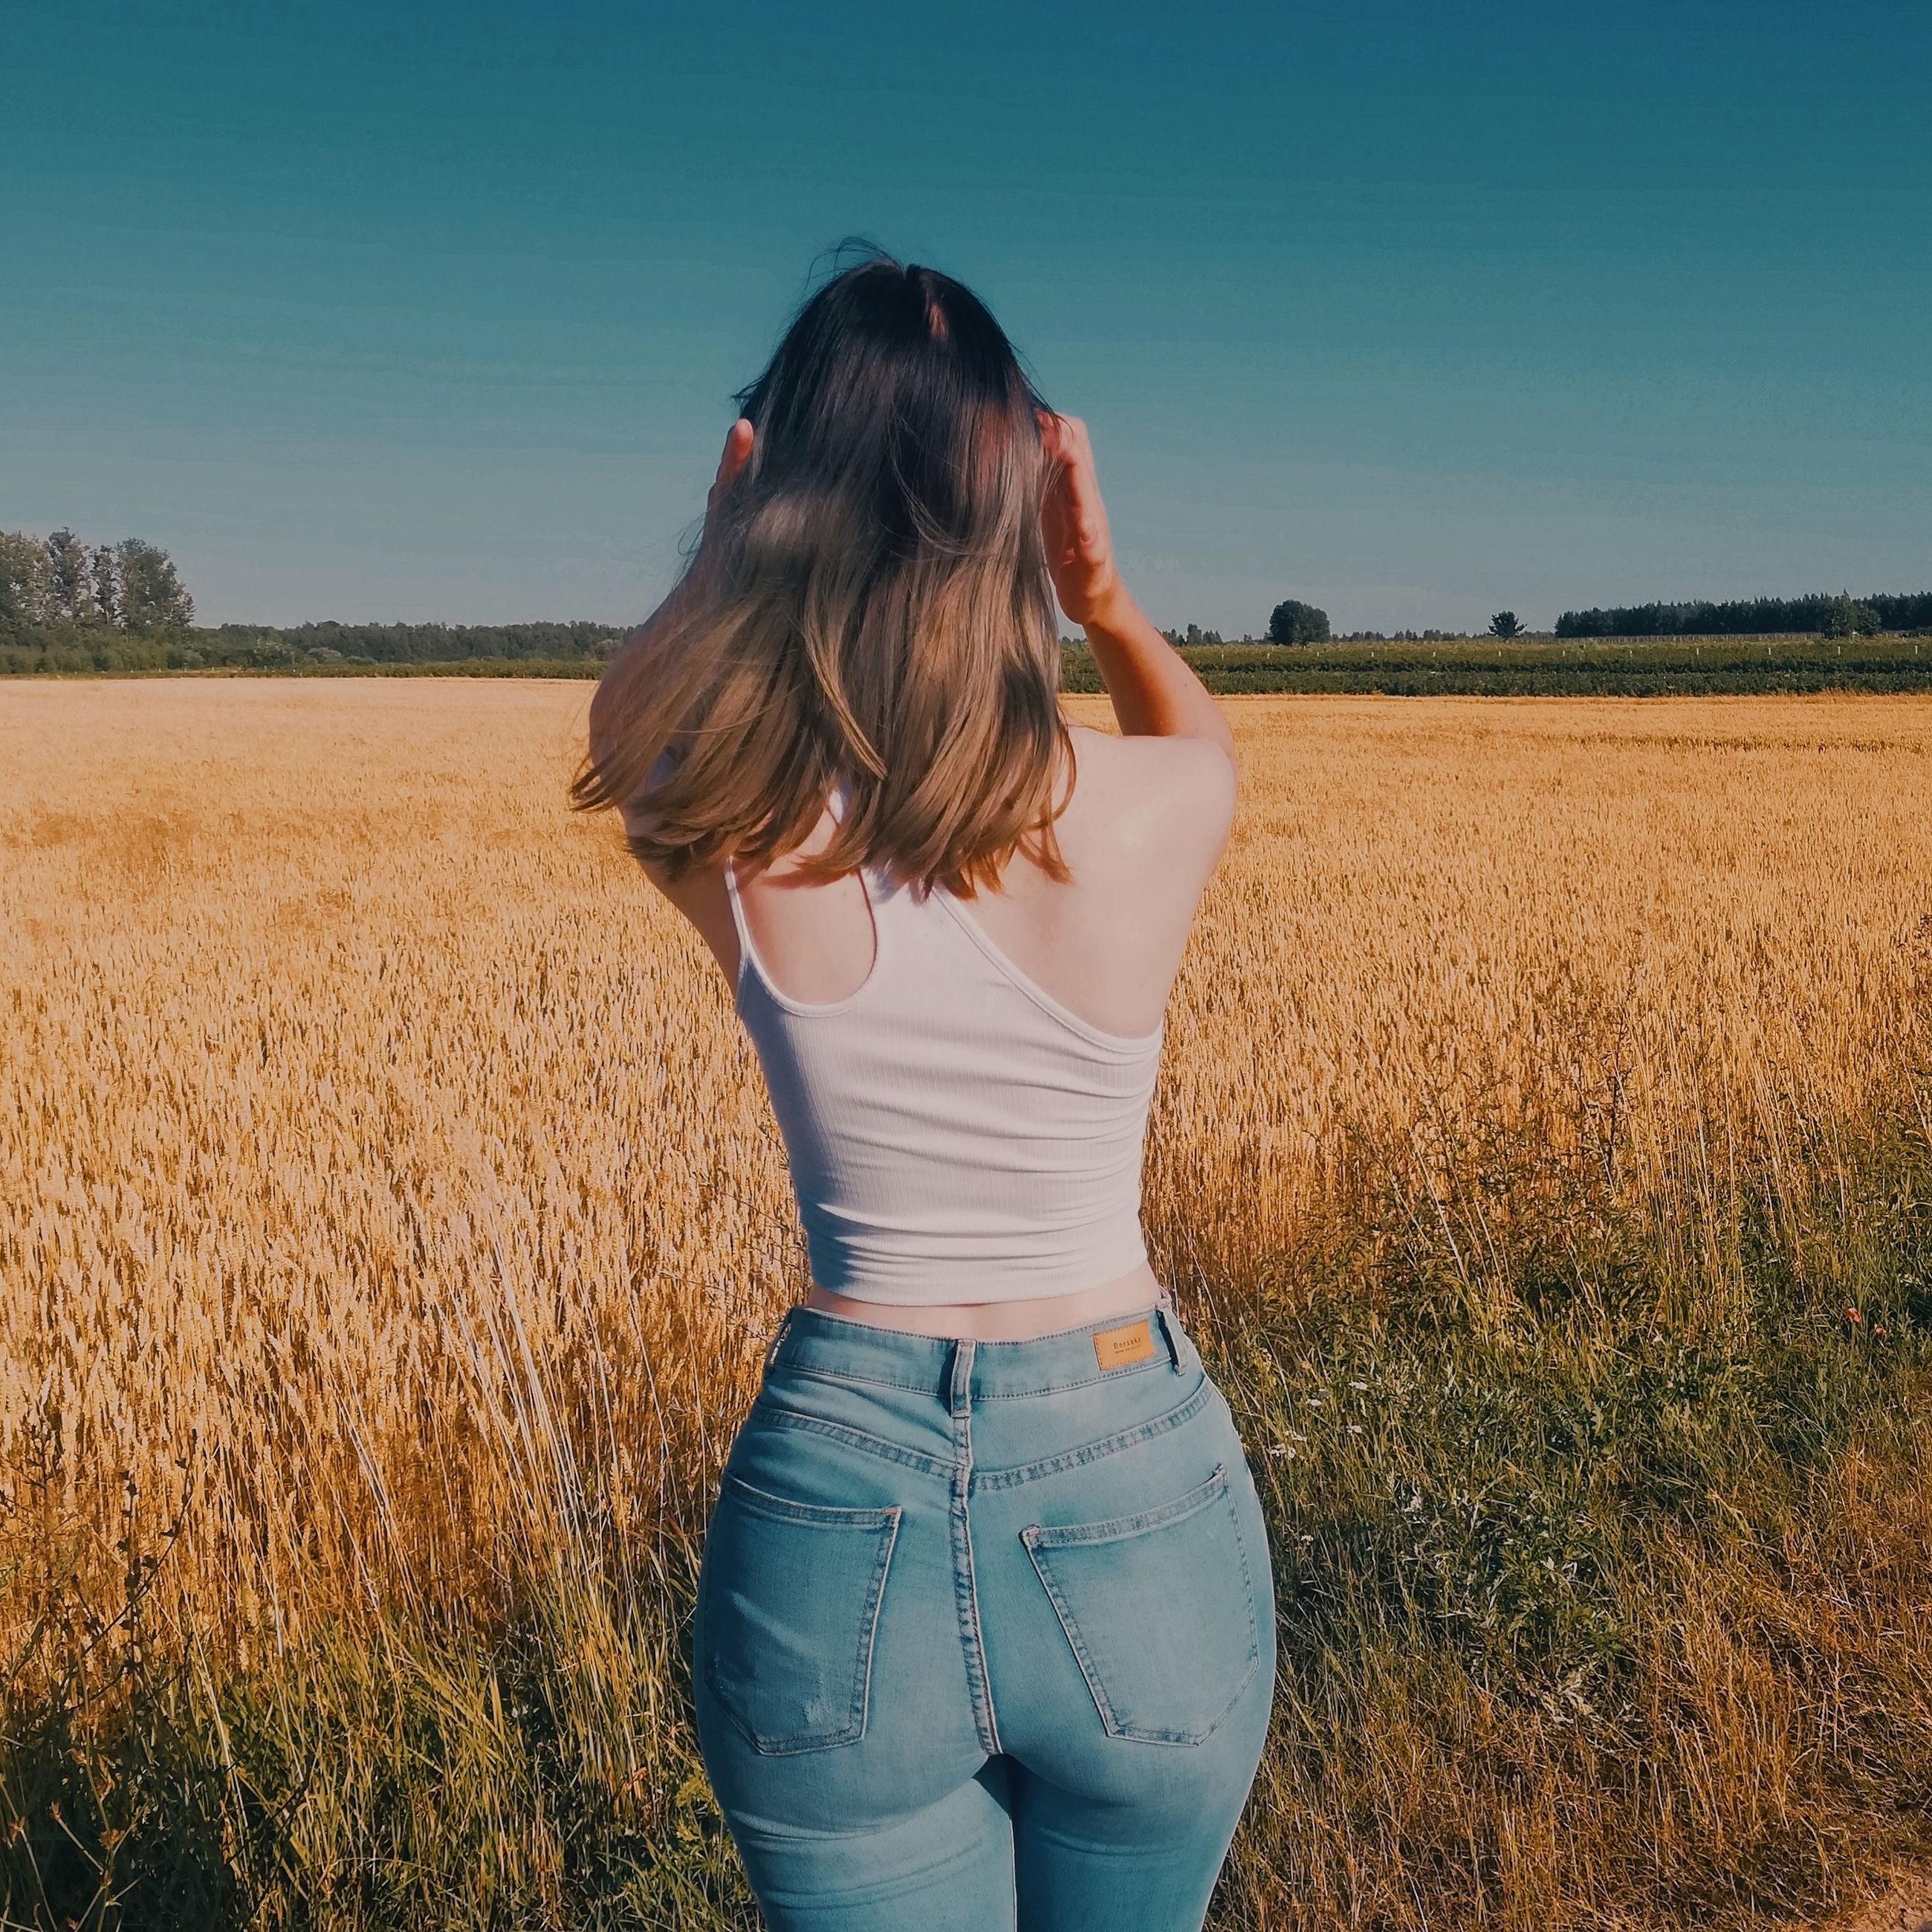 field, land, one person, real people, leisure activity, casual clothing, standing, plant, lifestyles, women, three quarter length, landscape, sky, environment, agriculture, hairstyle, nature, hair, day, outdoors